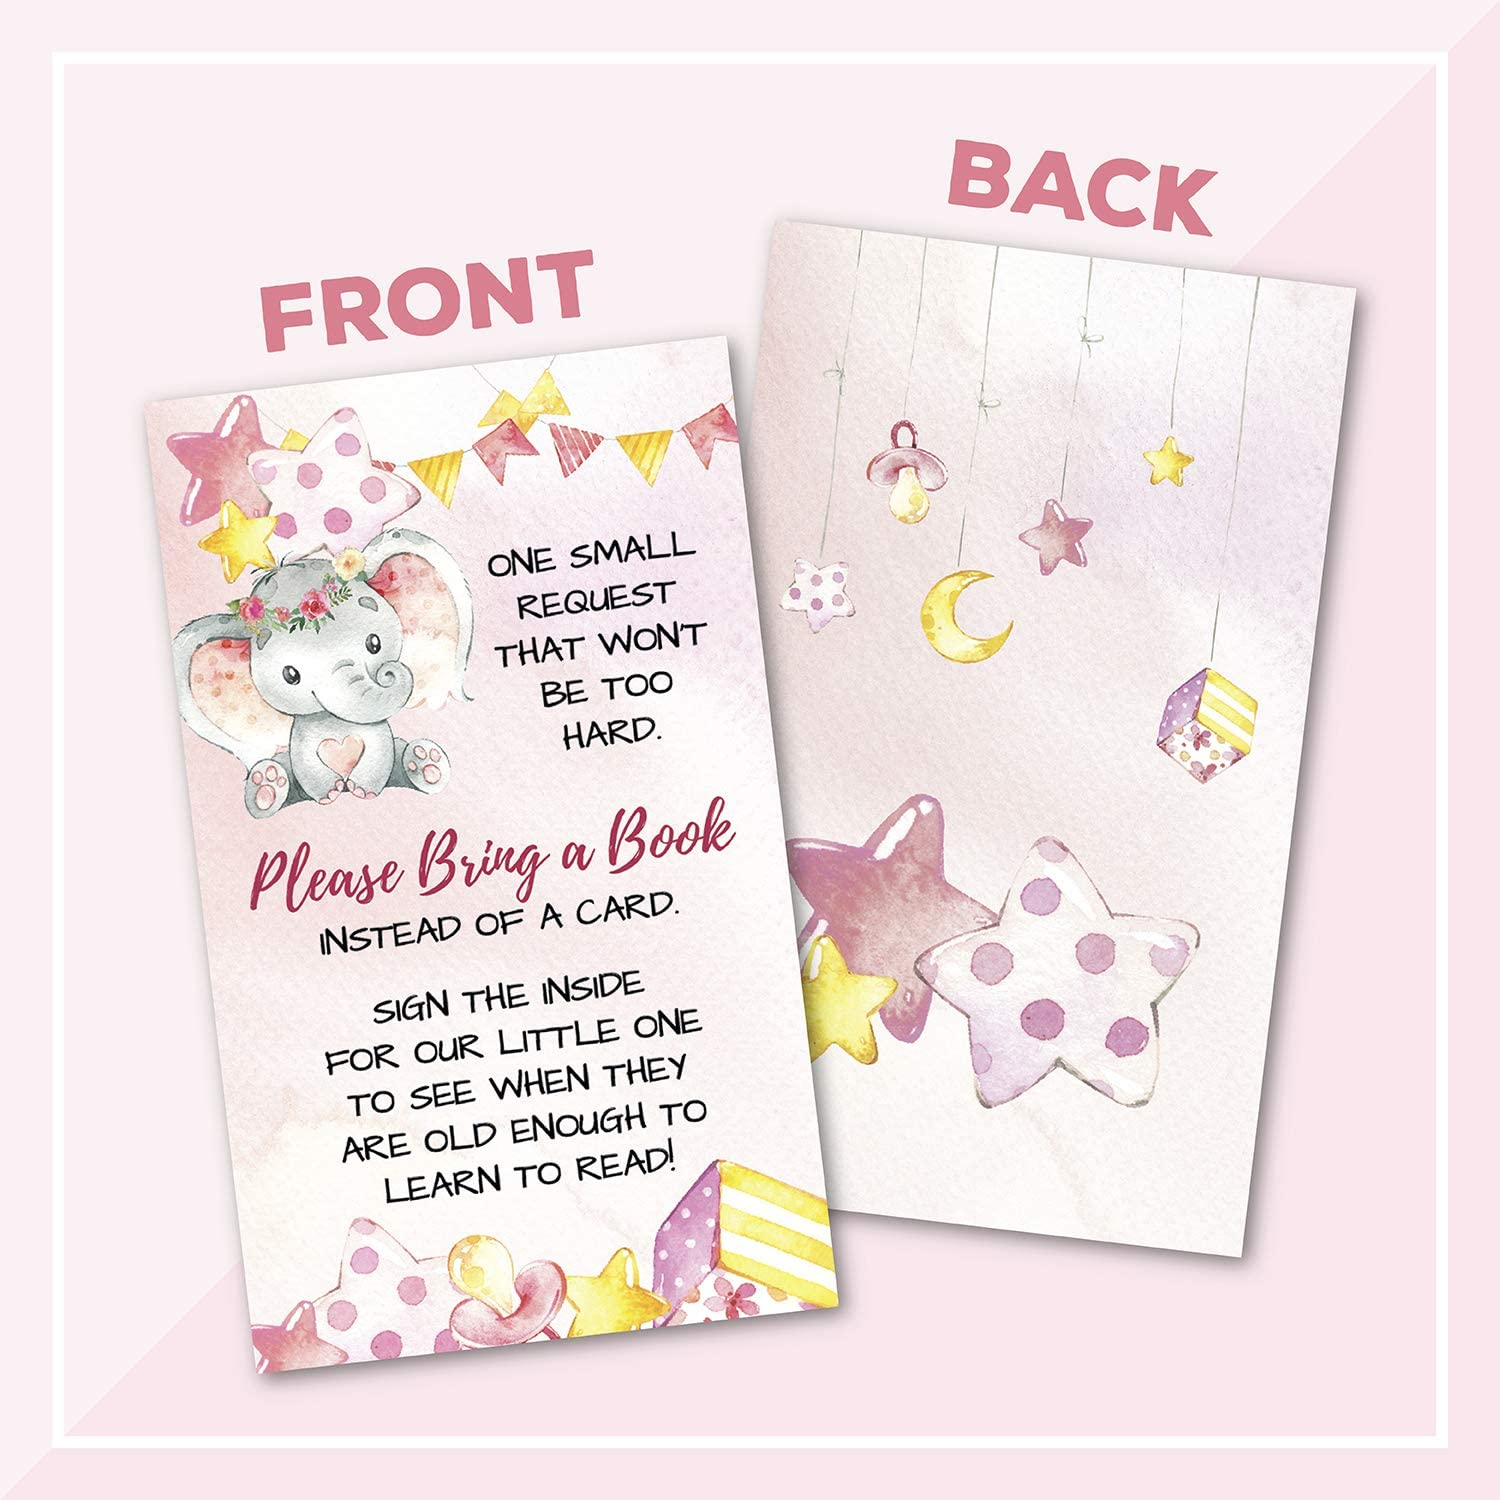 50 Double Sided Elephant Books for Baby Request Insert Card for Girl Baby Shower Invitations or Gender Reveal Invites Bring A Book Instead of a Card Party Games Activities Decorations